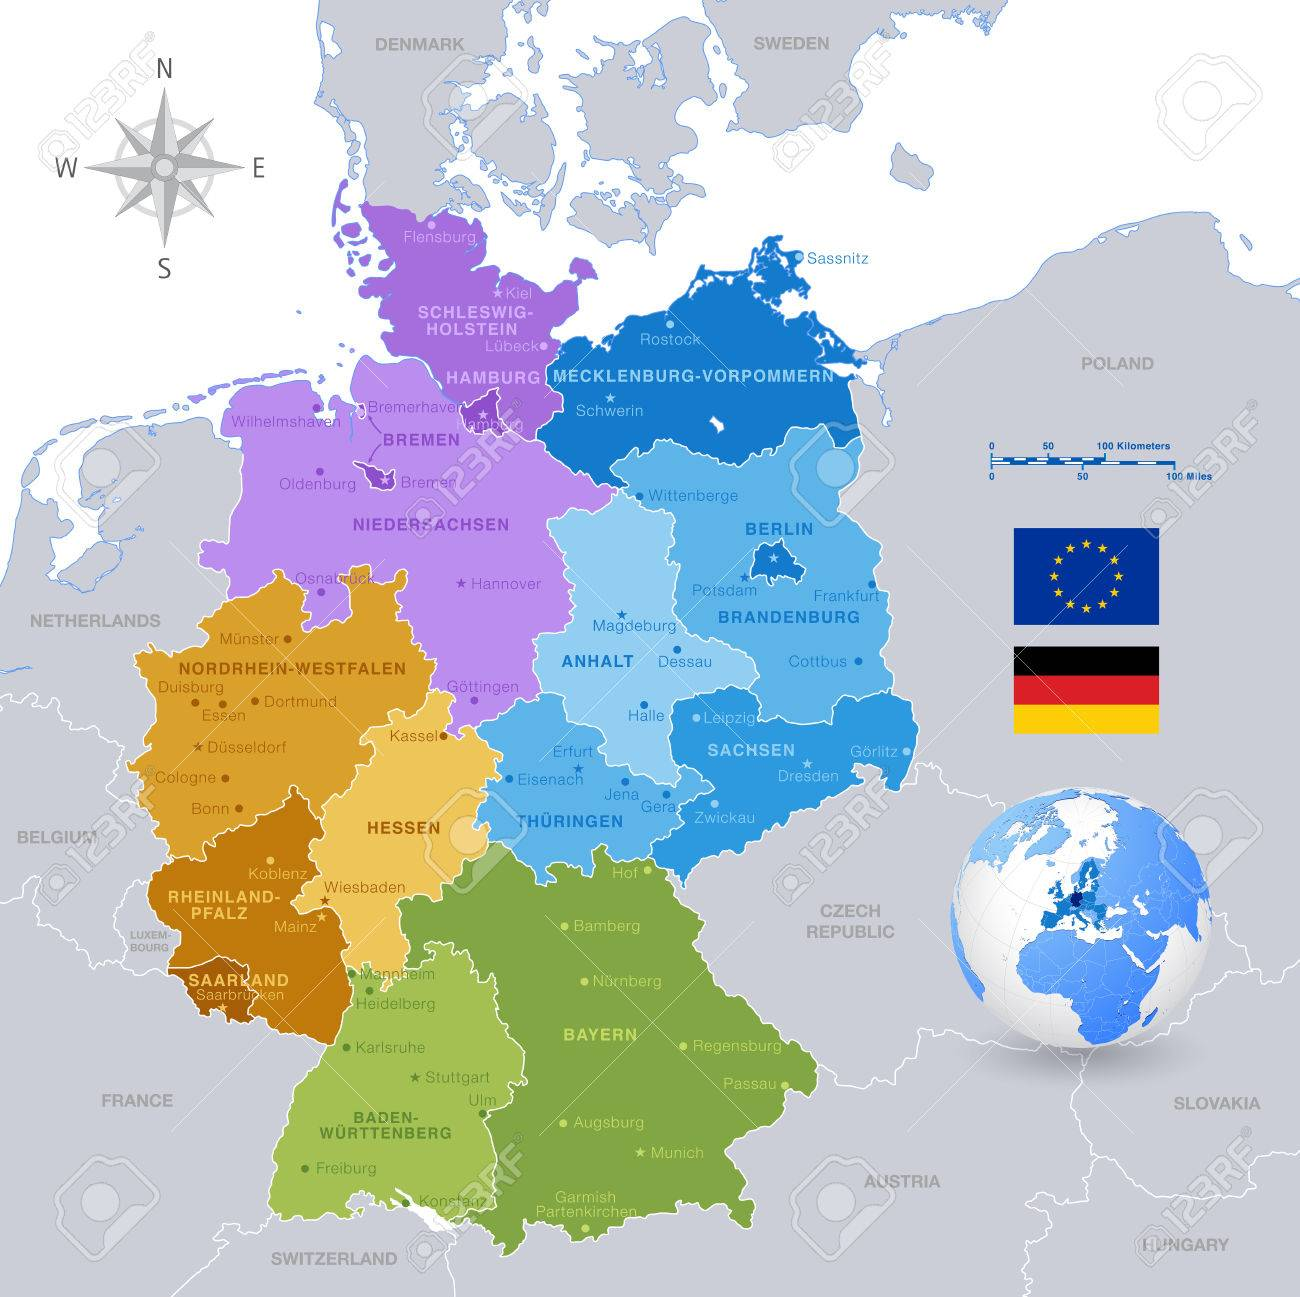 A High Detail Vector Map Of Germany States And Major Cities - Germany map states